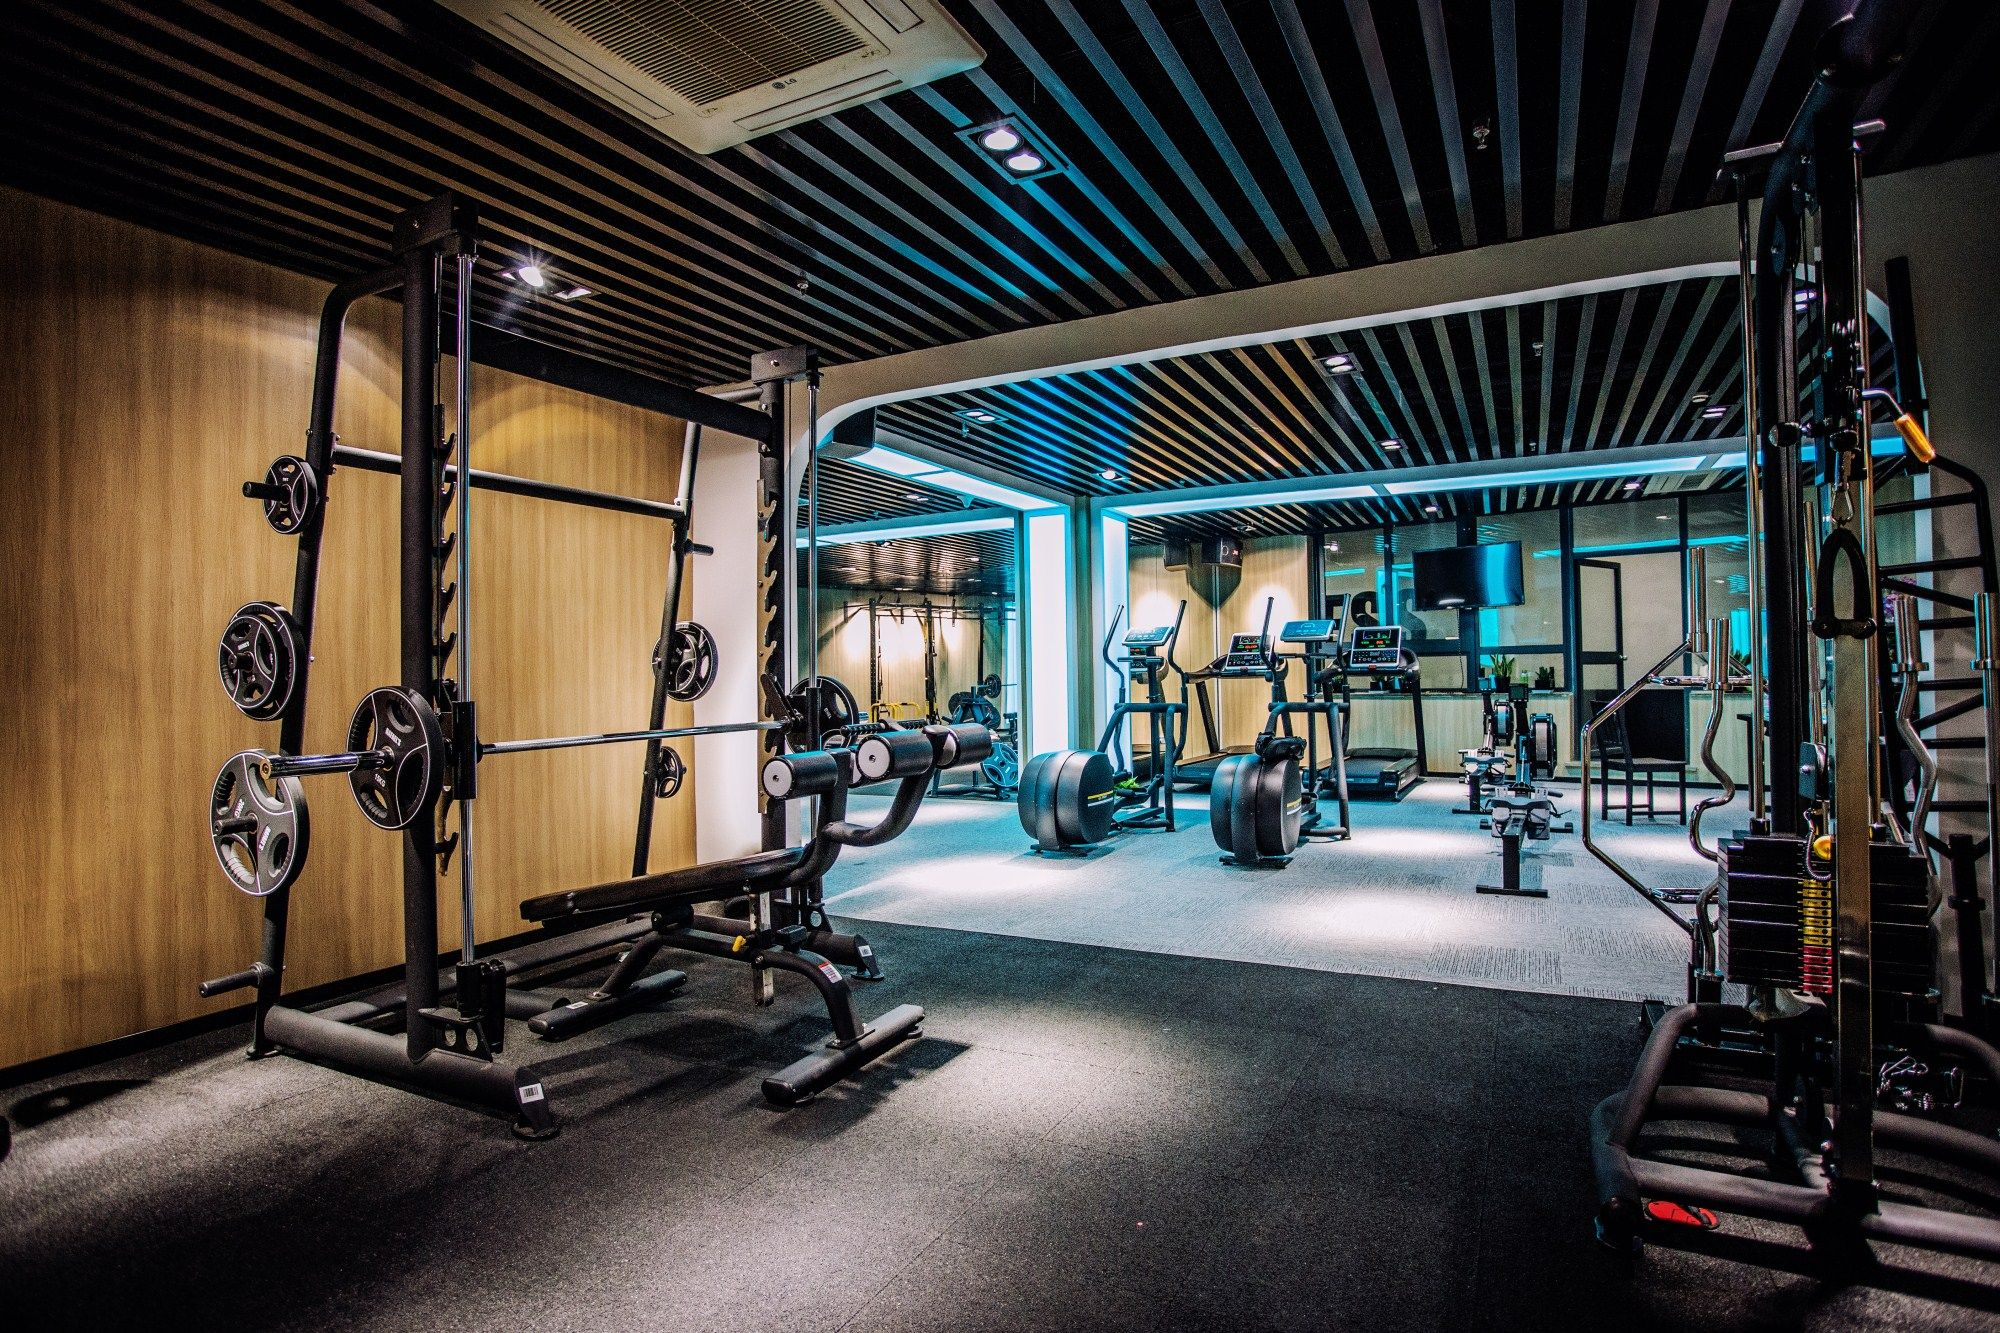 The Beautiful Gym Gym Interior Gym Design Gym